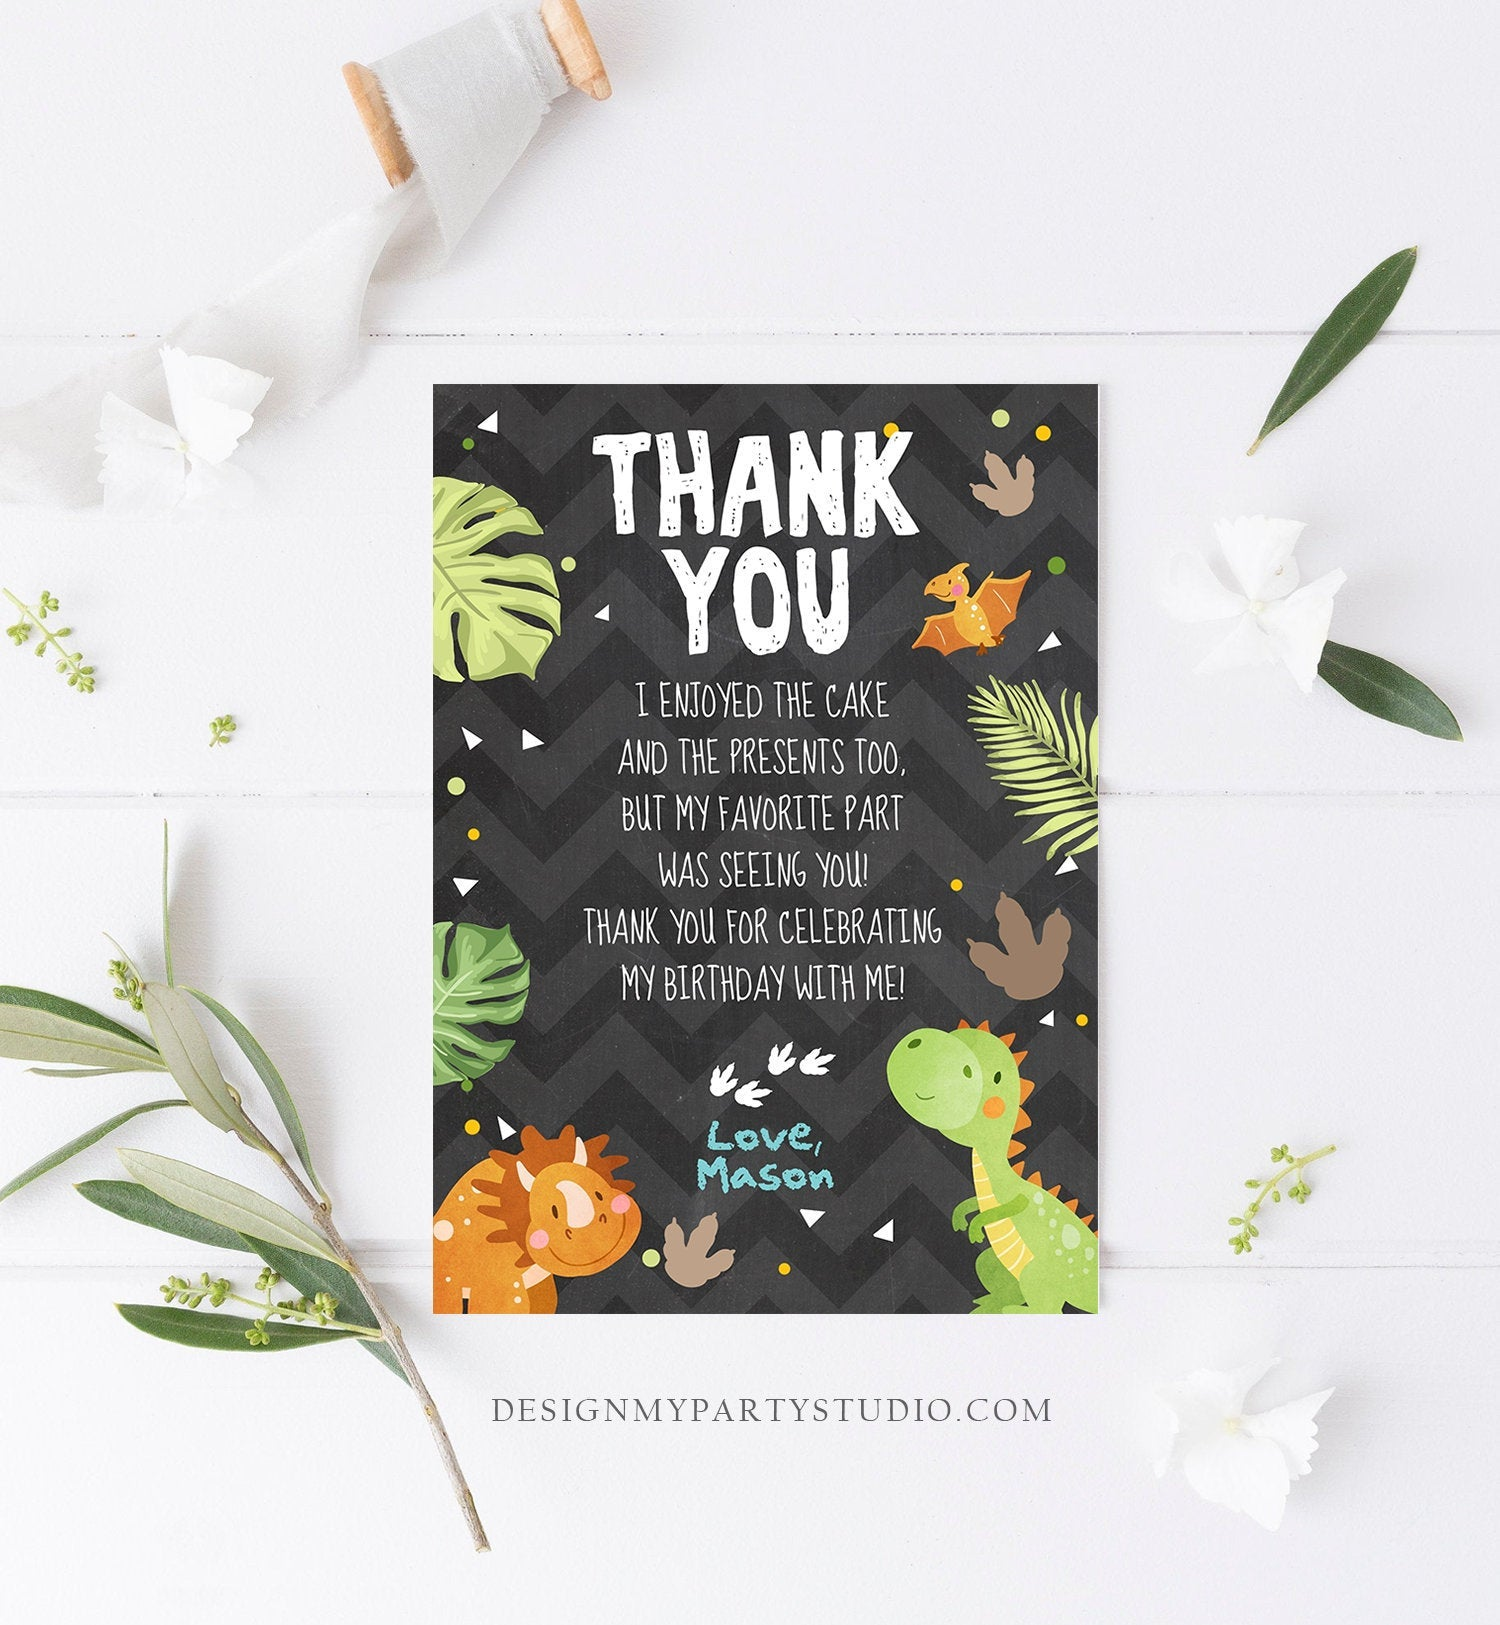 Editable Dinosaur Thank You Card Boy Prehistoric Dino Dig Party T-Rex Fossil Foot Prints Digital Download Printable Template Corjl 0283